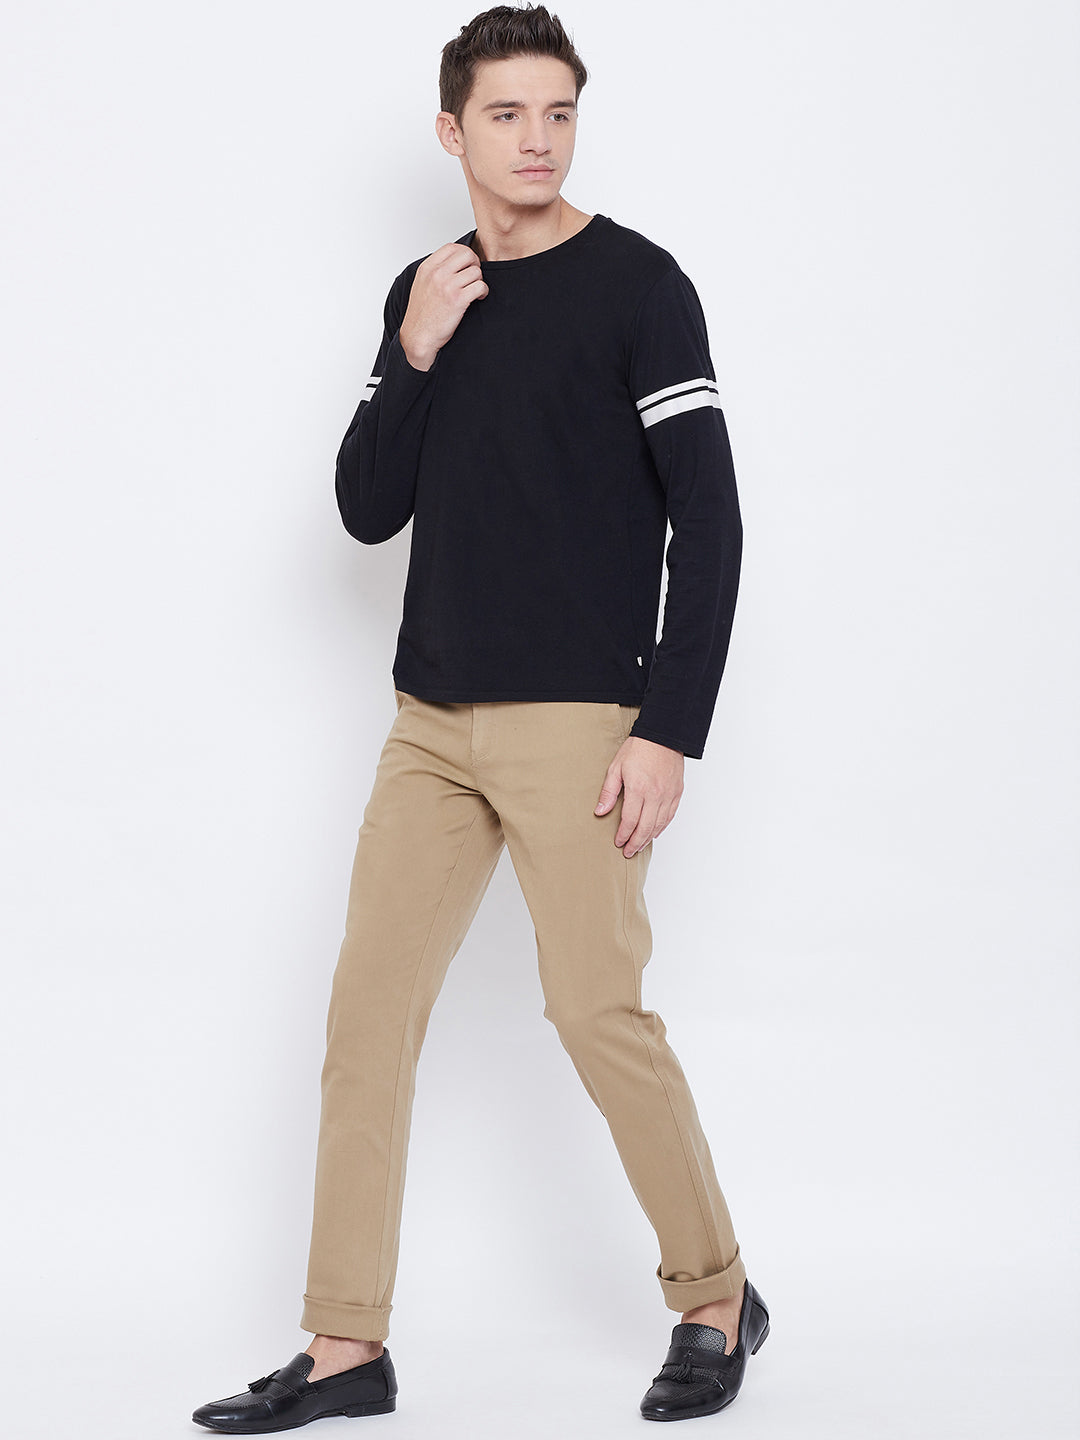 Octave Apparels Khaki Trouser for Men